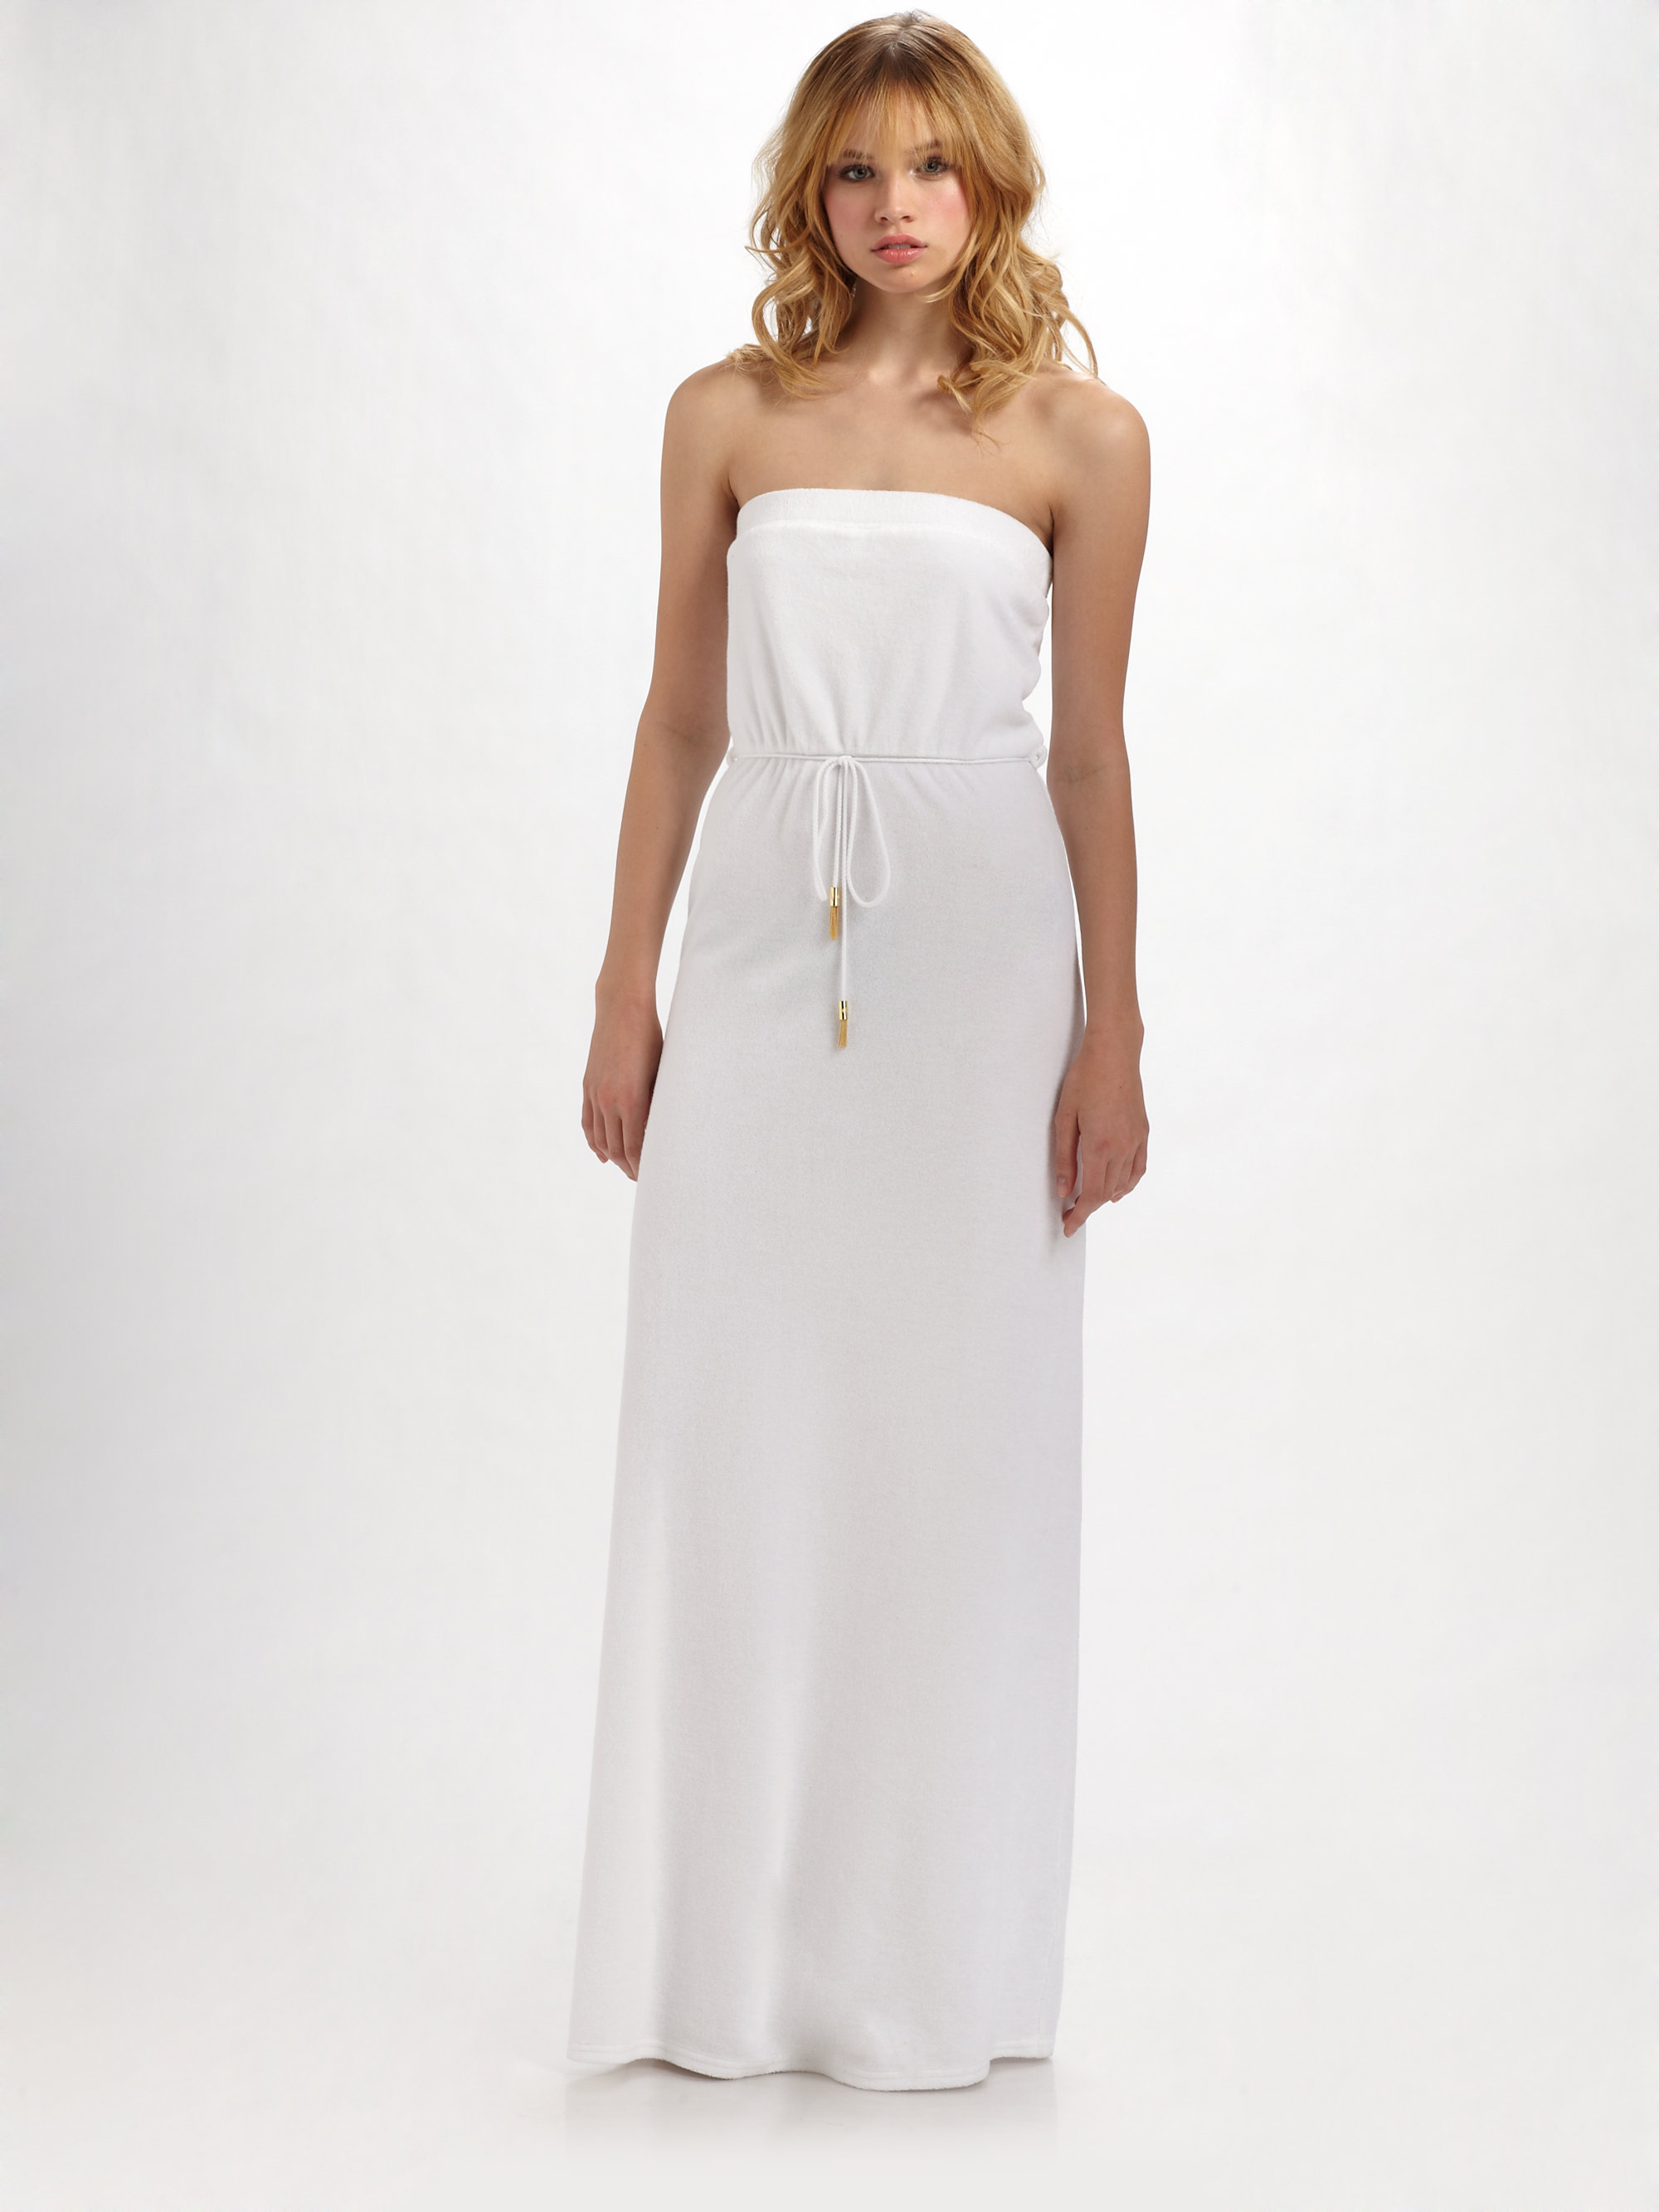 1a48c036d9 Lyst - Juicy Couture Terry Strapless Maxi Dress in White